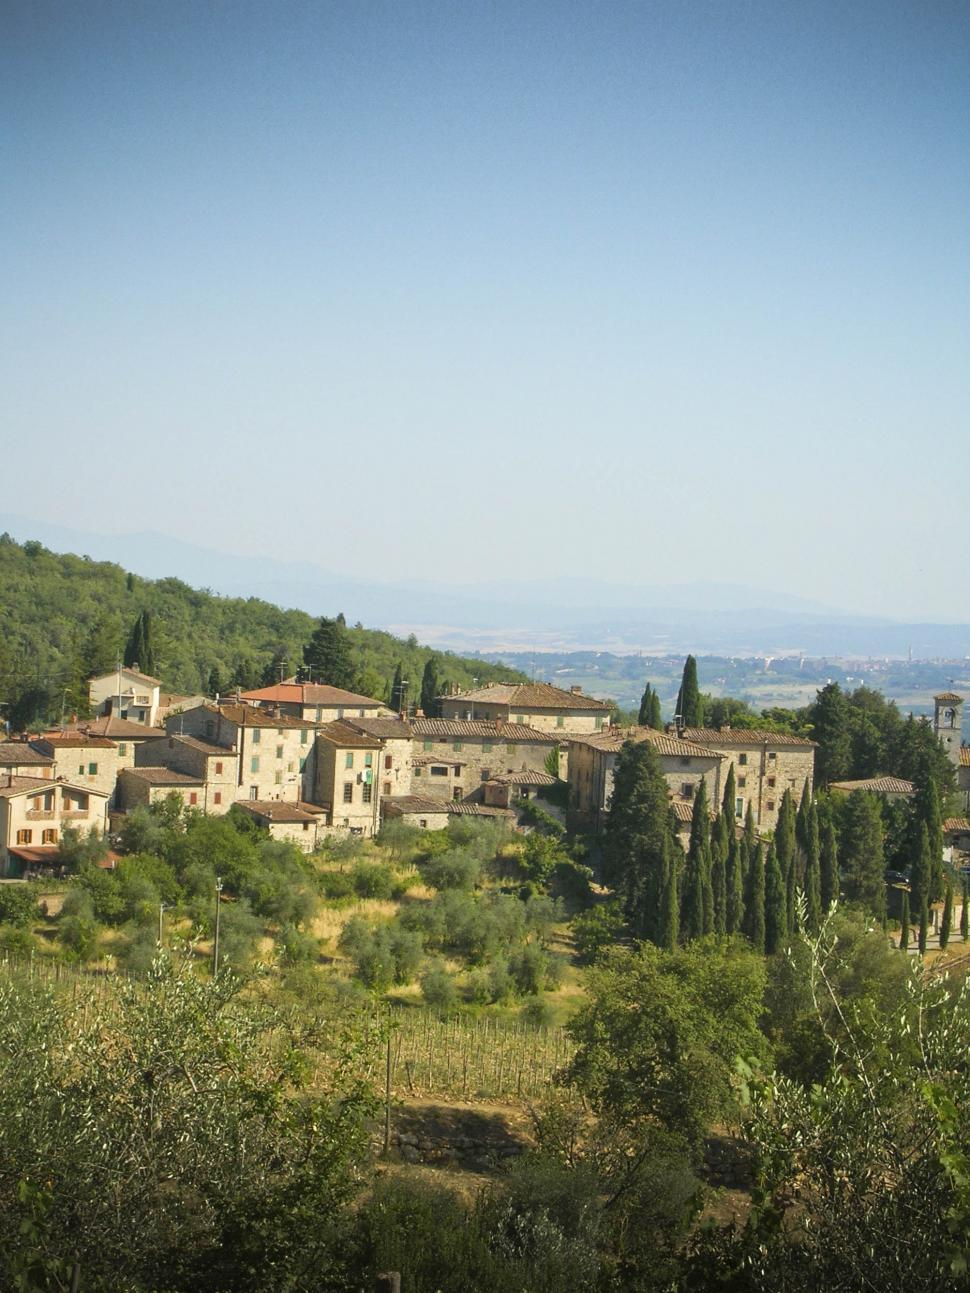 Download Free Stock HD Photo of tuscany village Online